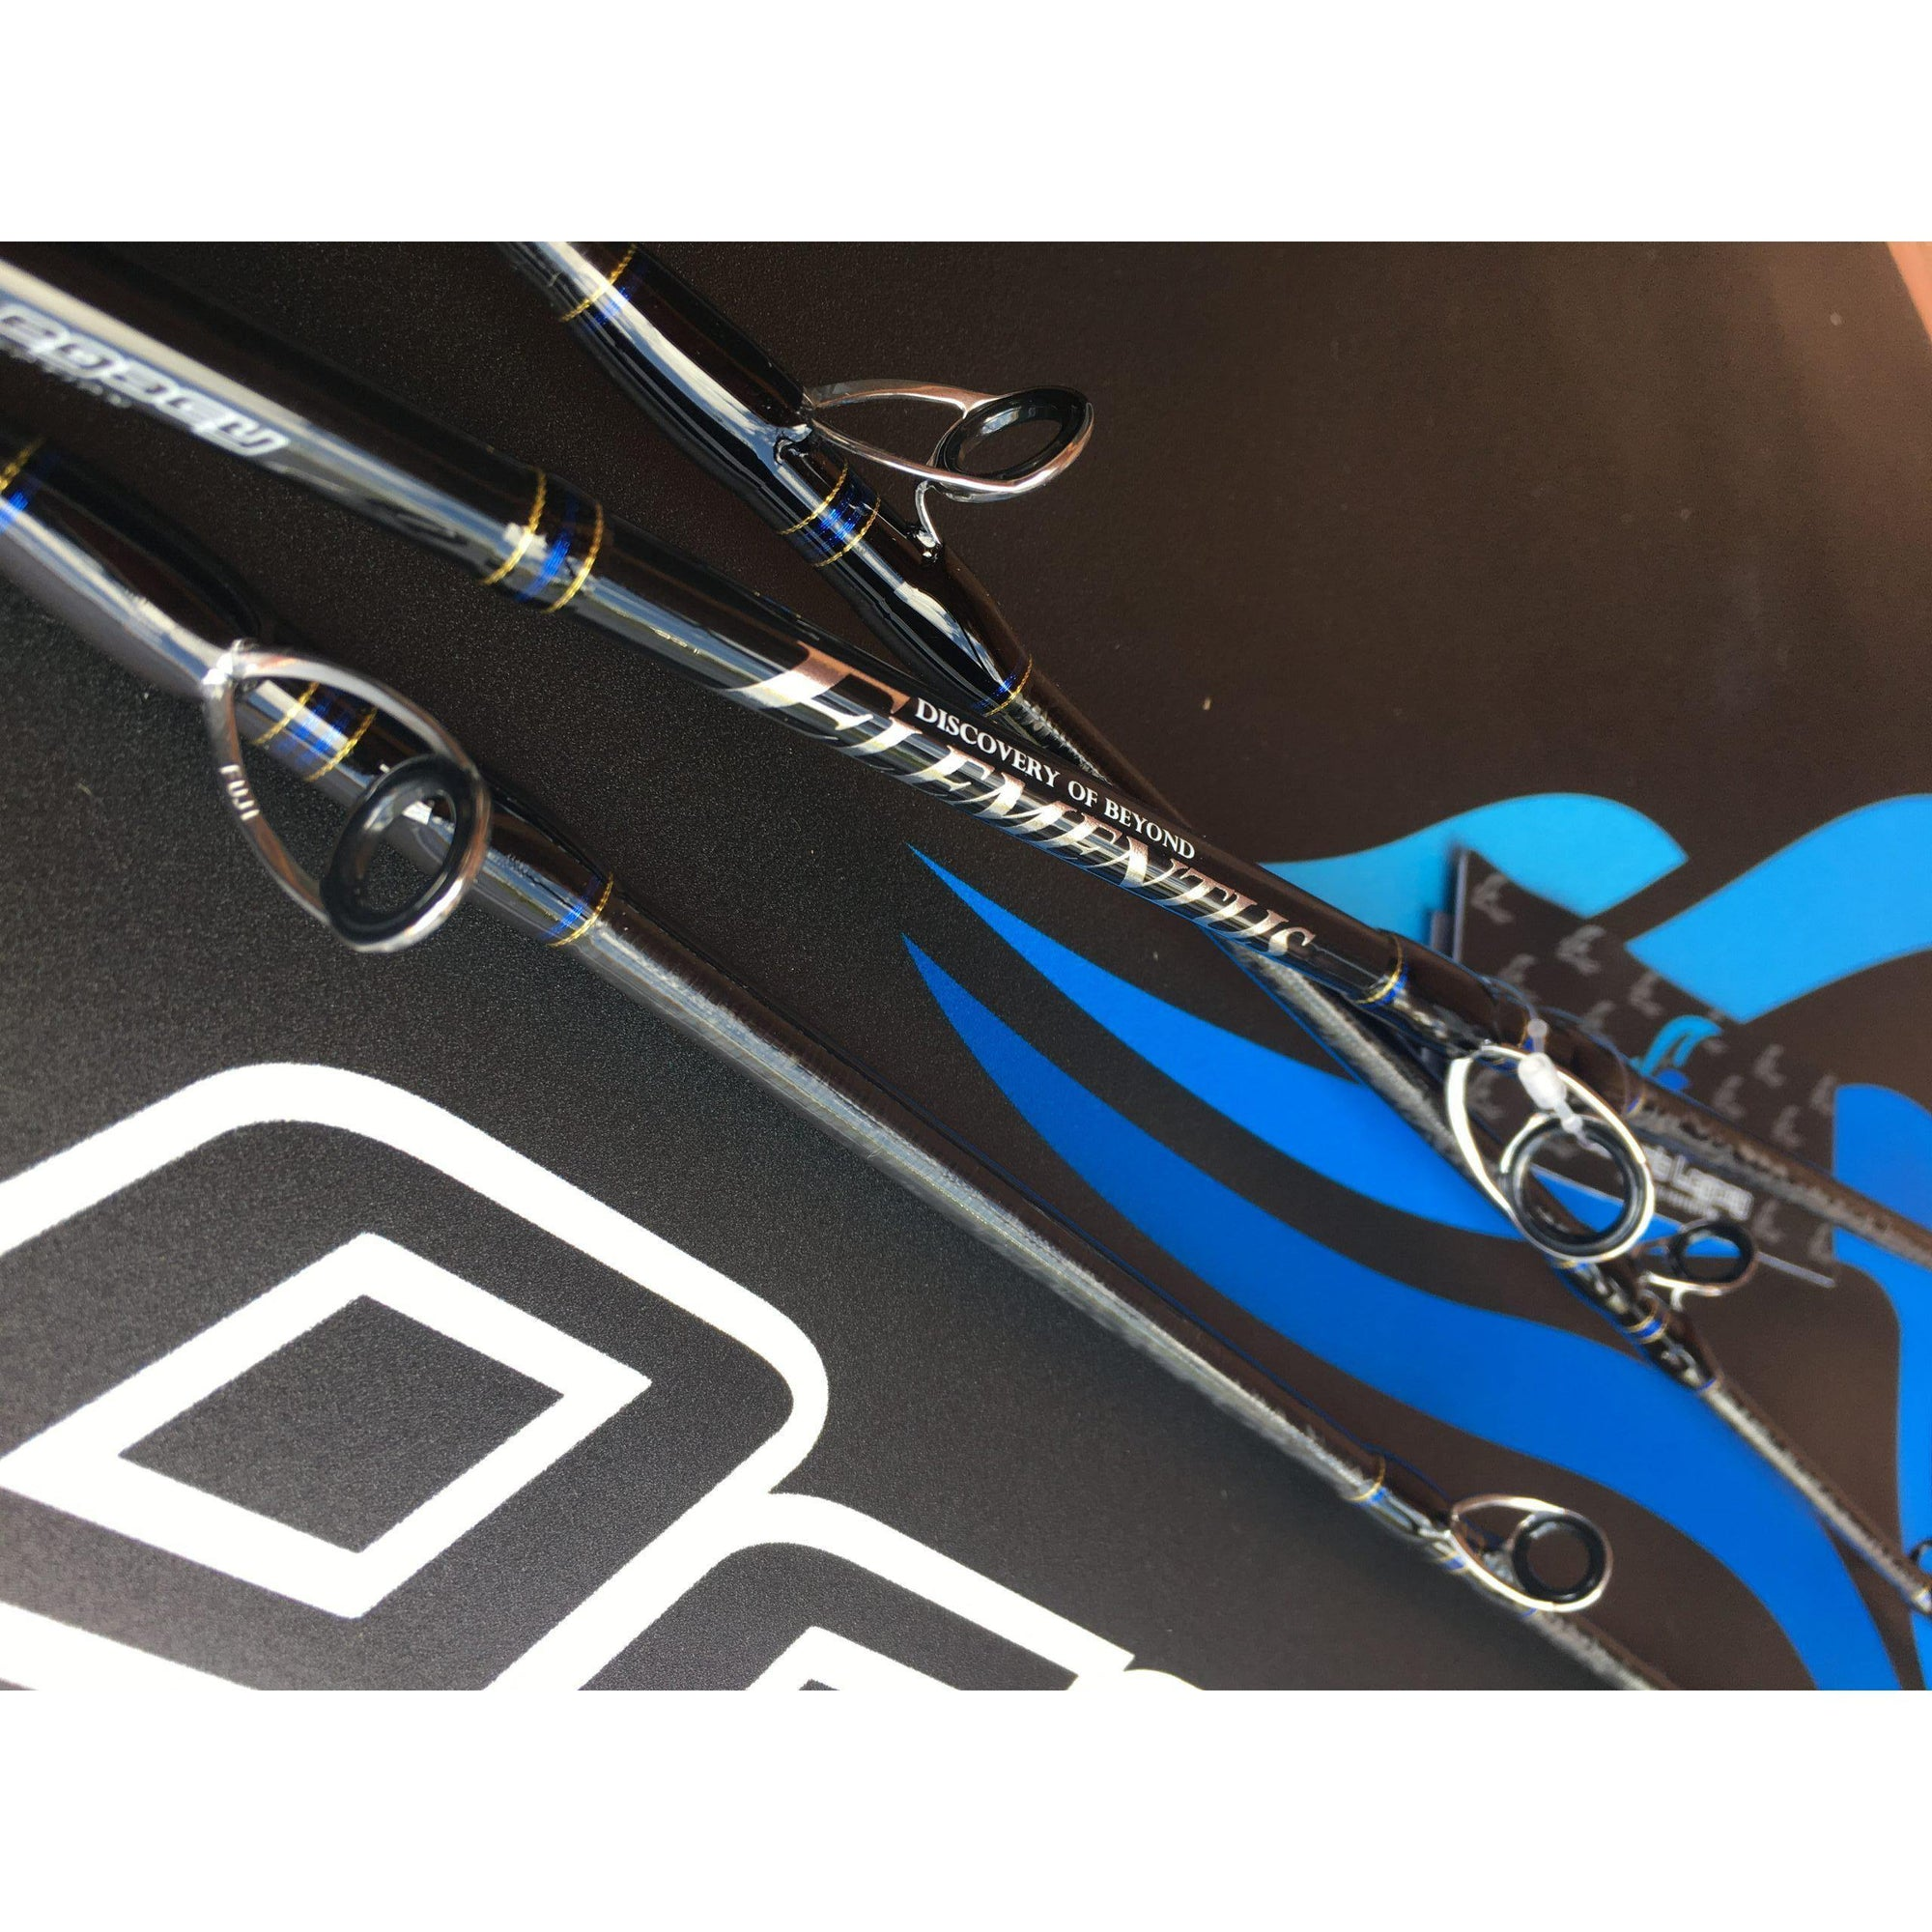 Oceans Legacy Elementus Spin Jig Rod - Rods - Jig | Addict Tackle